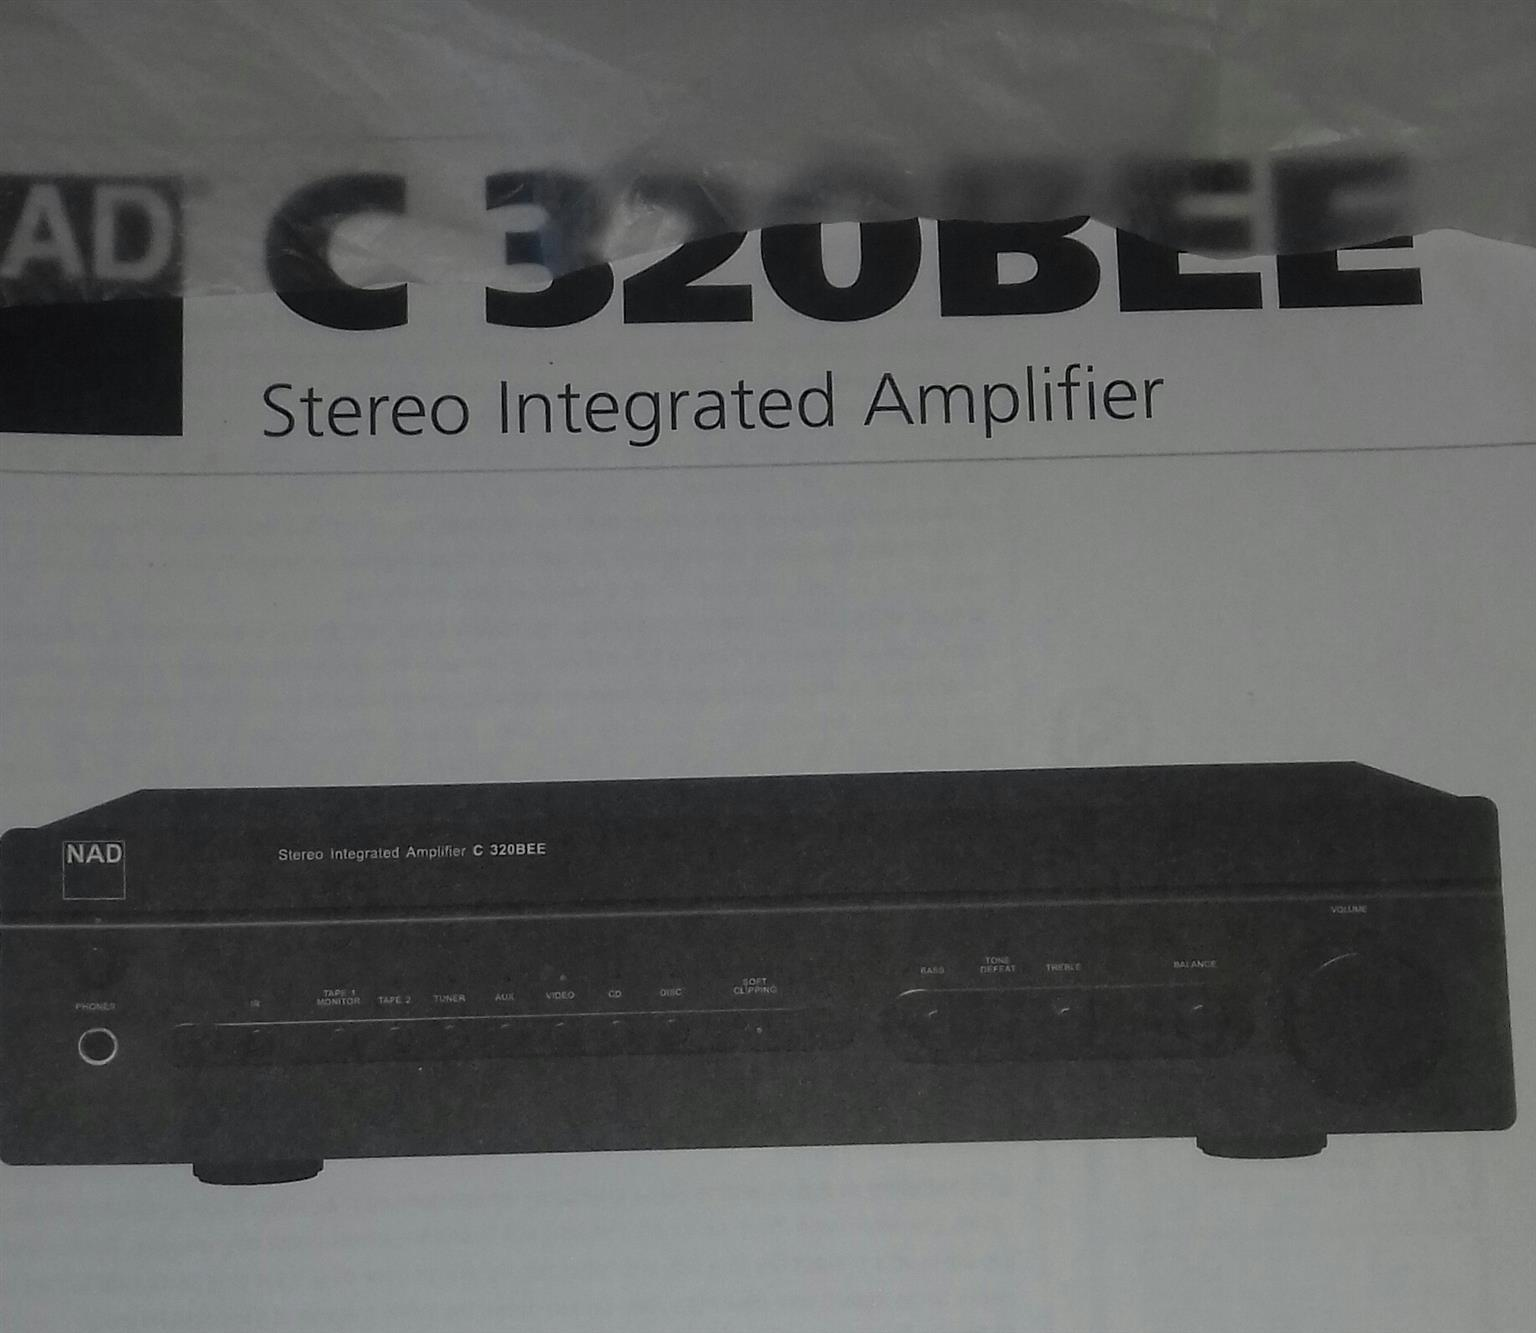 Looking for a NAD amplifier to complete my set